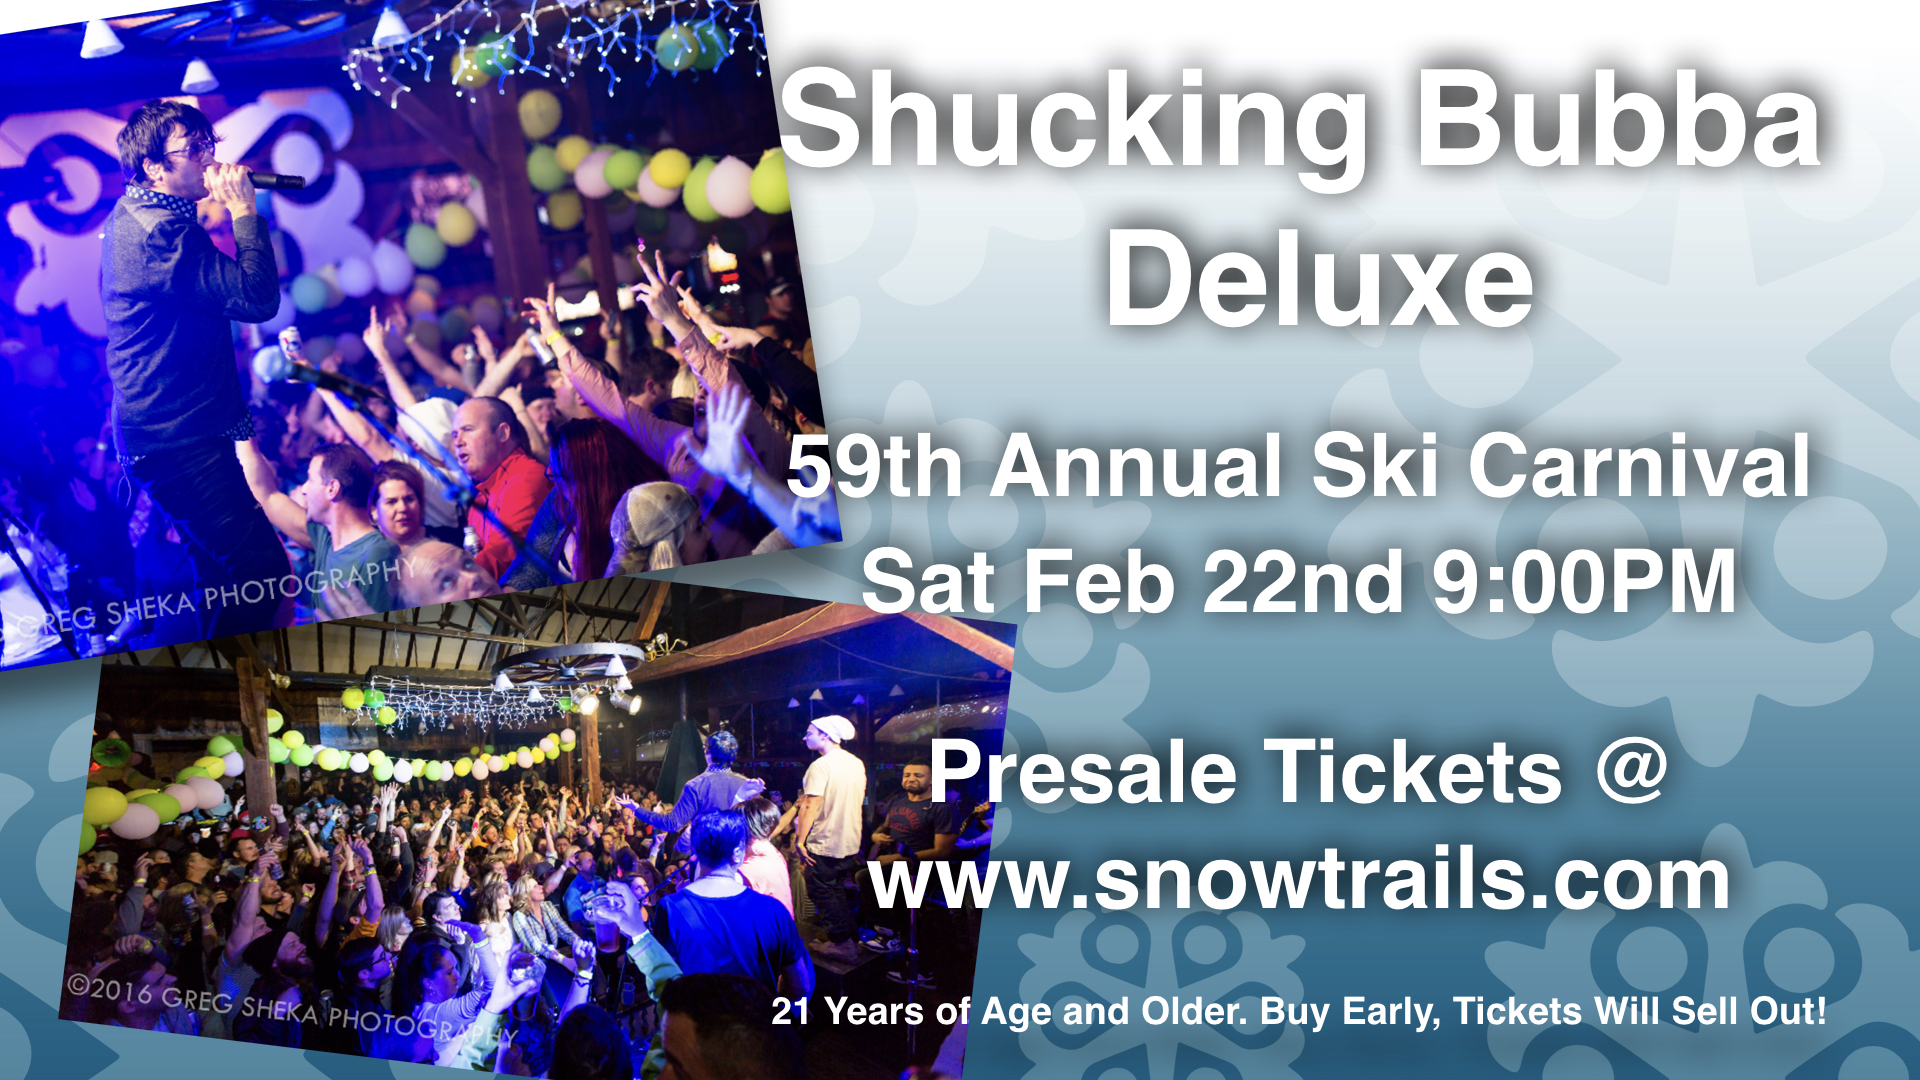 Shucking Bubba on 2-22-20 @ 9PM